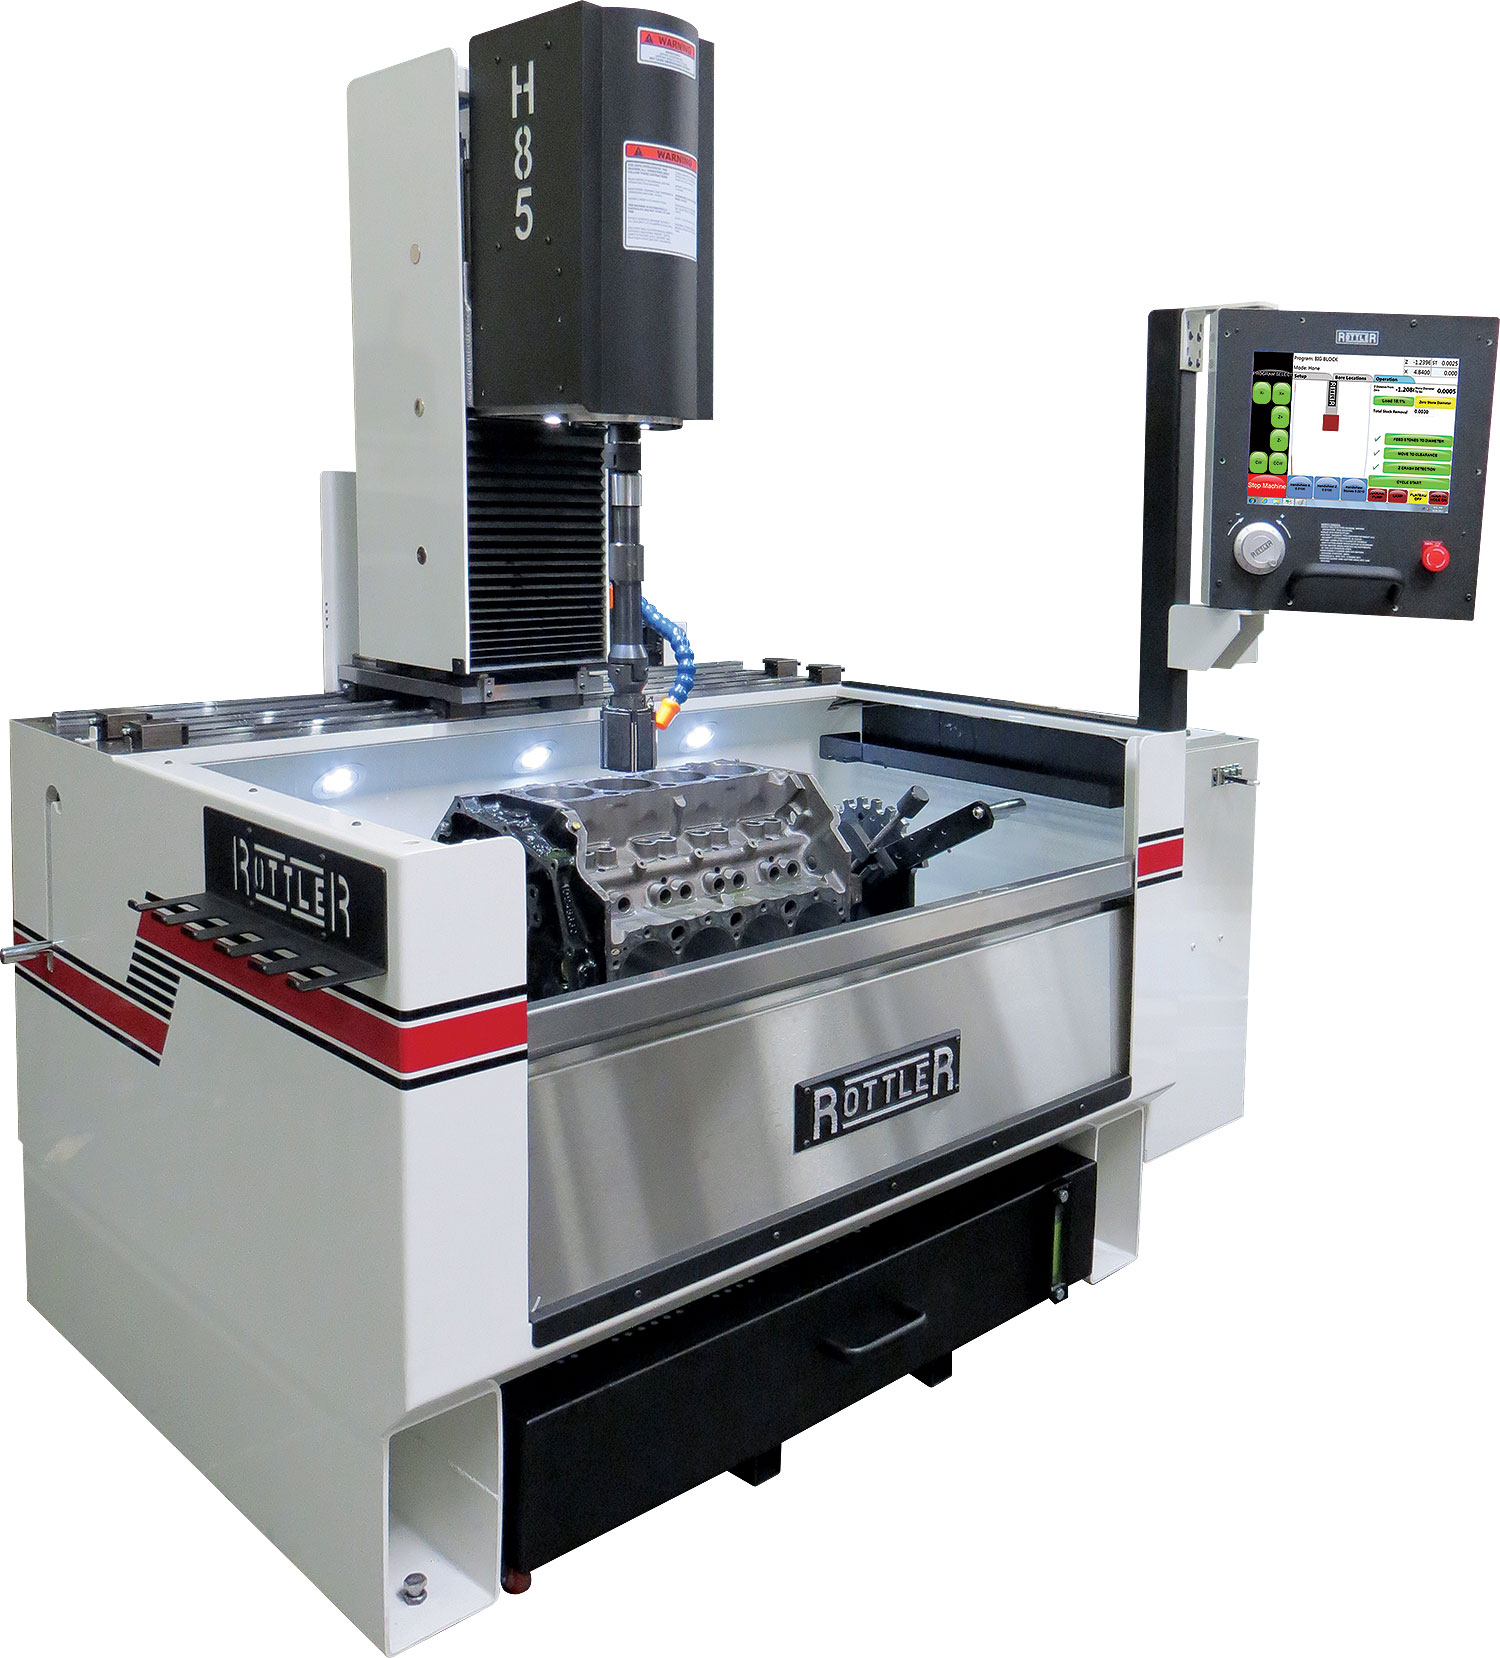 Rottler H85A CNC Automatic Vertical Honing Machine